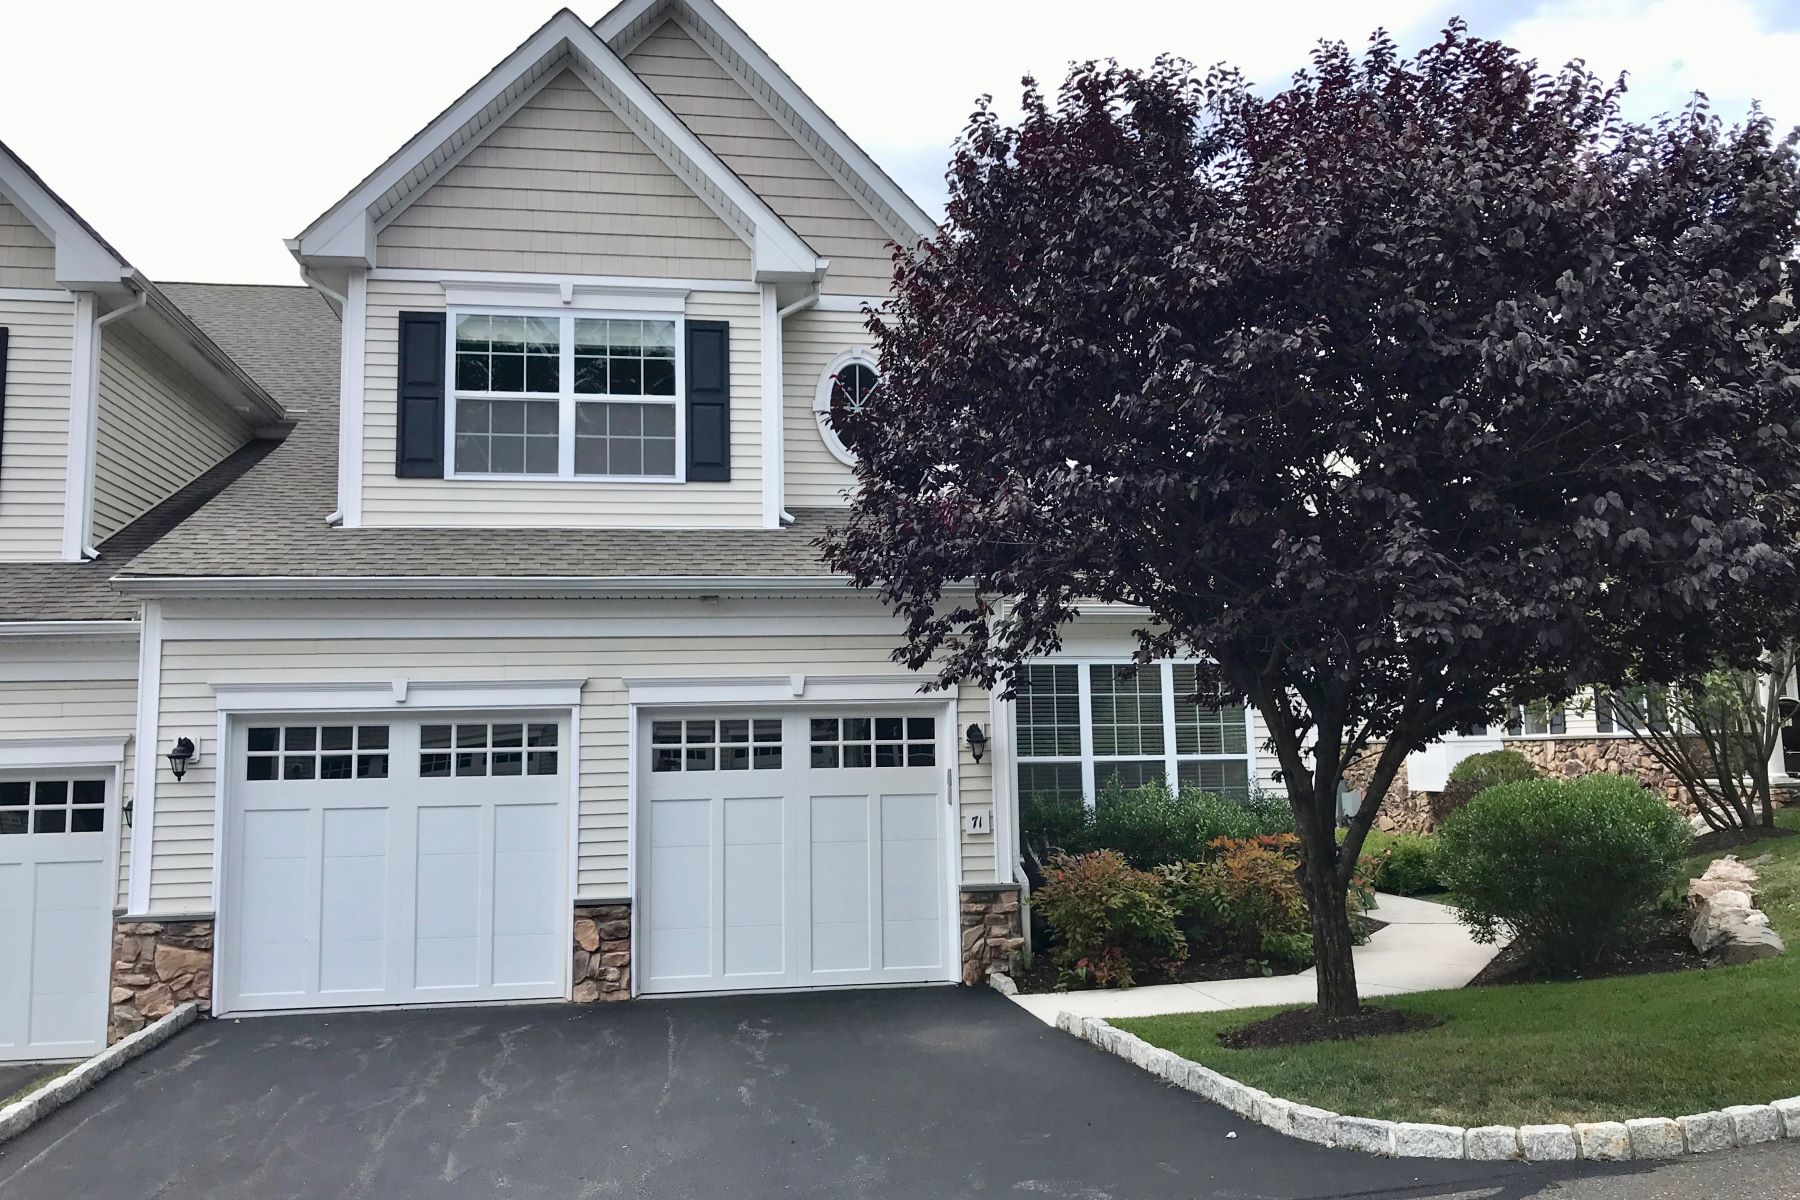 Condominiums for Sale at Fabulous End Unit in Bethel Meadows 71 Beacon Hill Terrace 71 Bethel, Connecticut 06801 United States